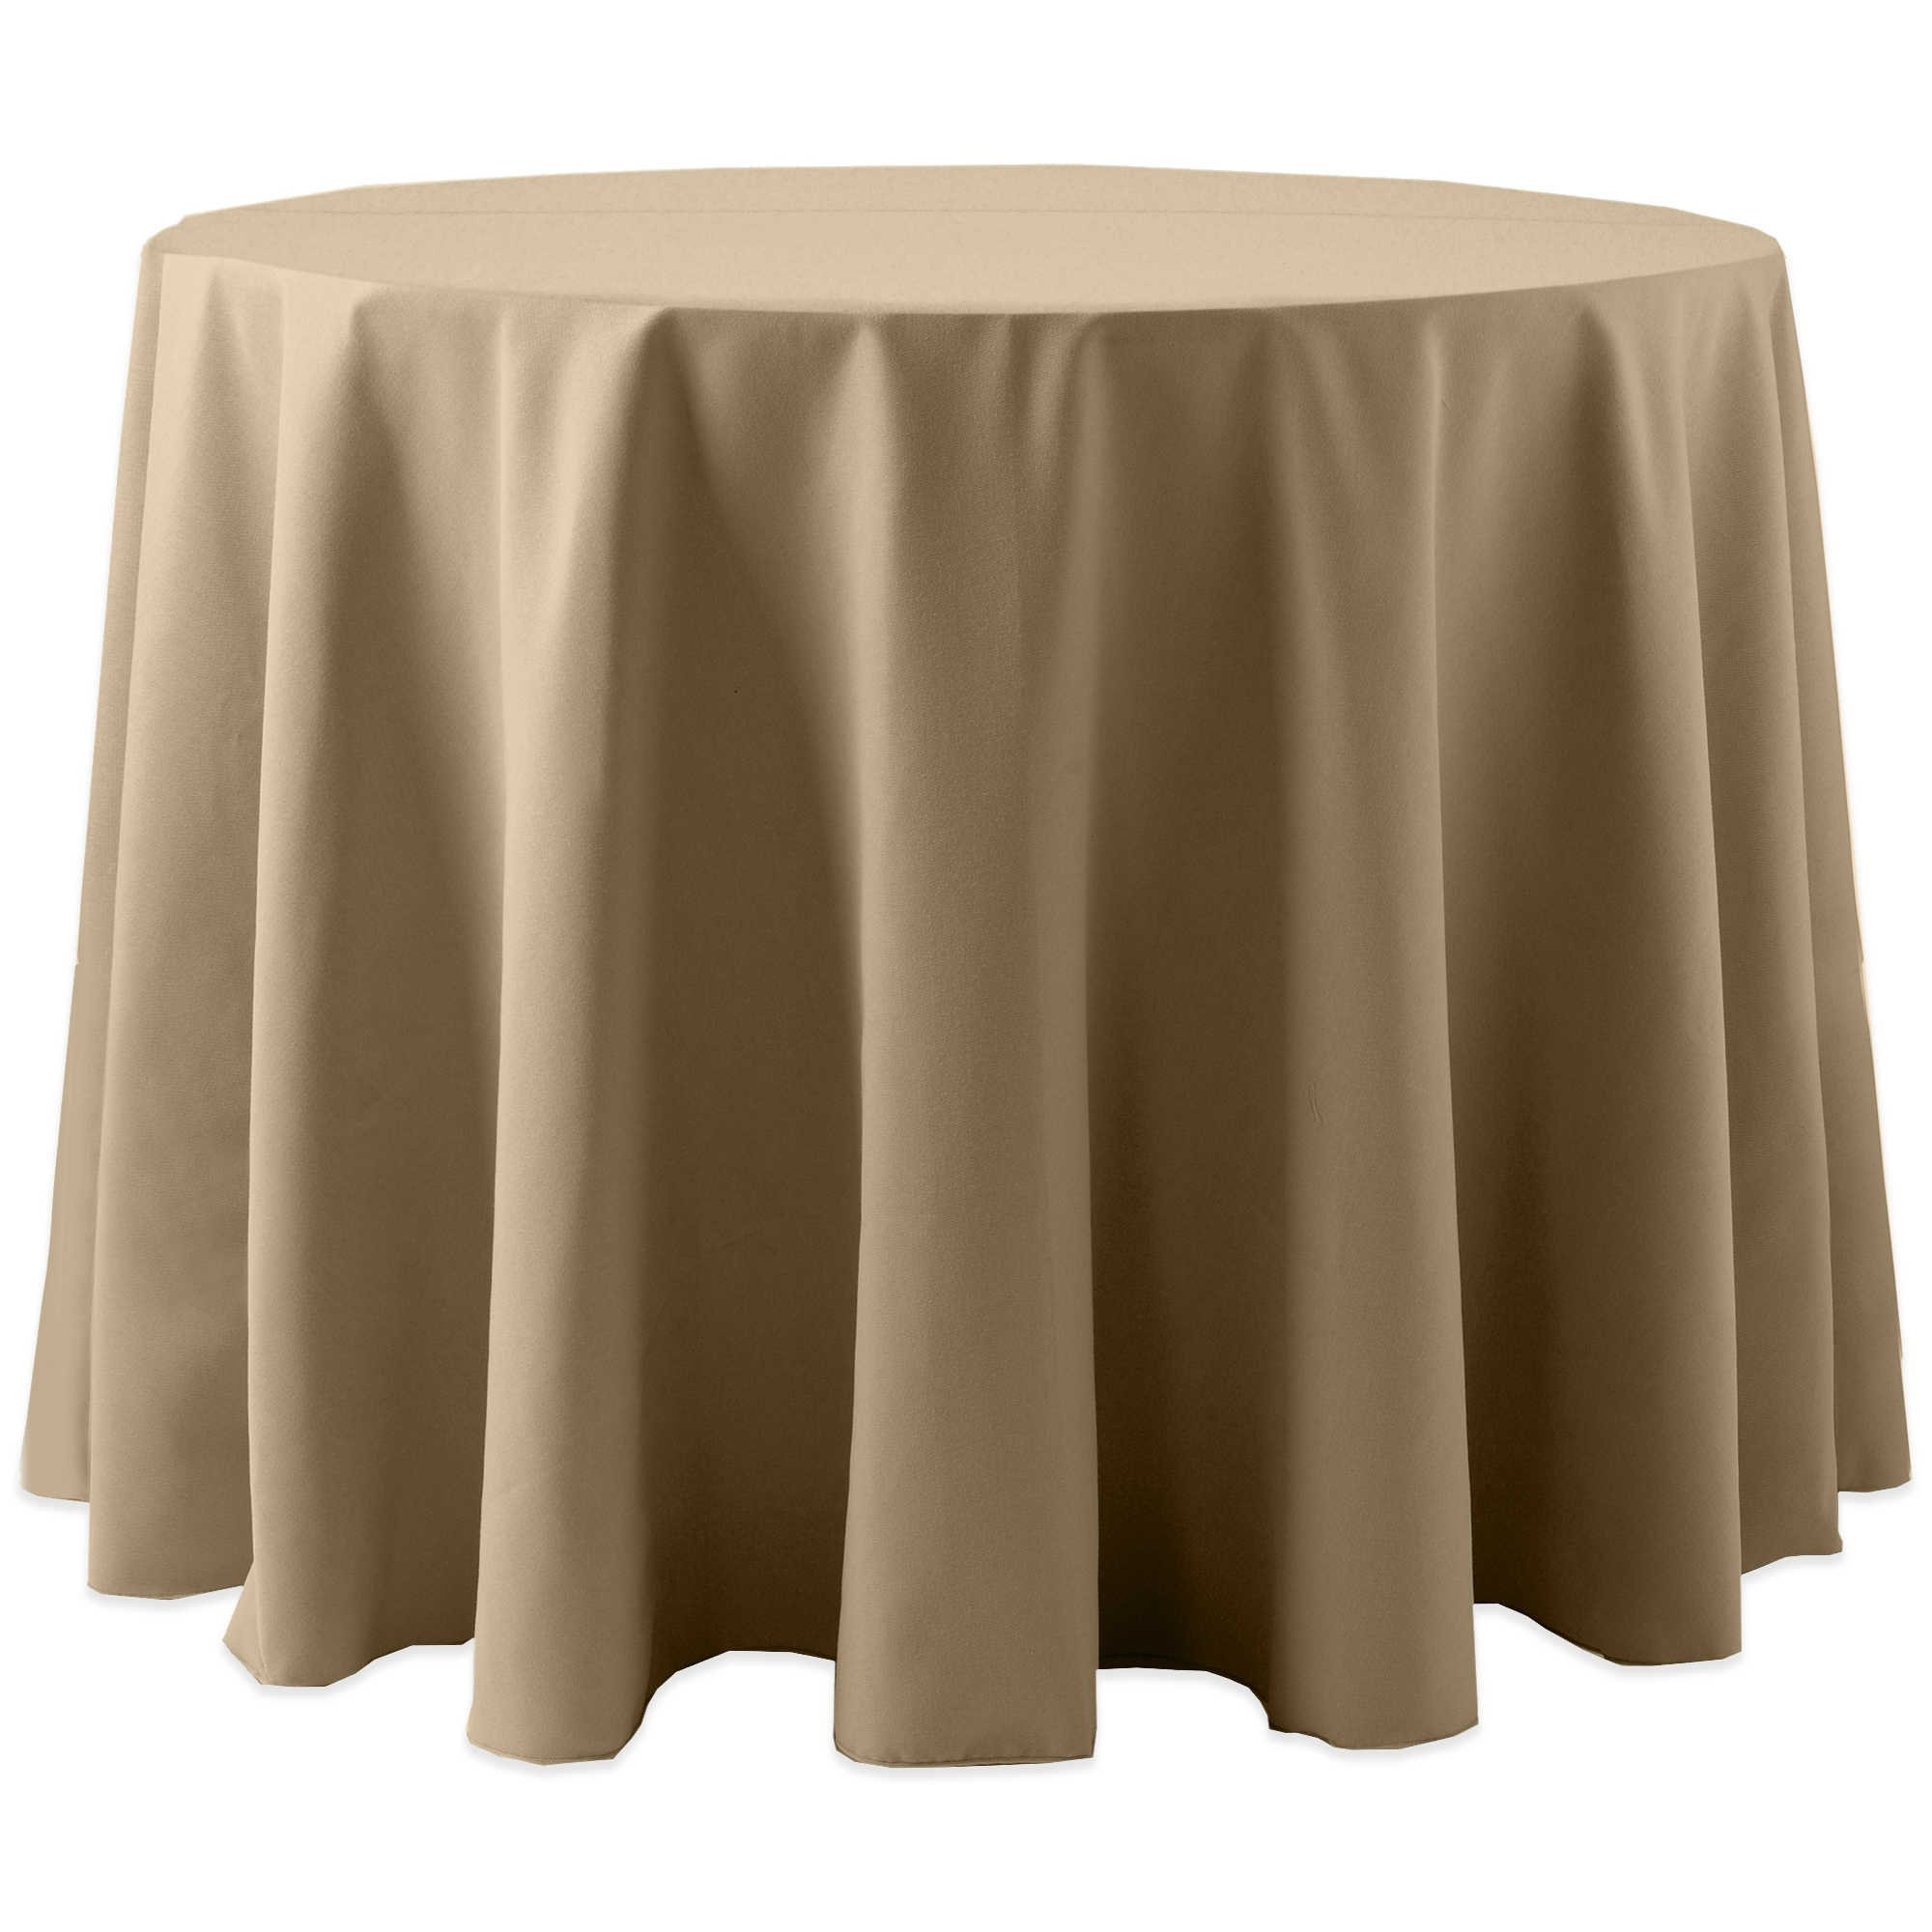 Ultimate Textile (10 Pack) Cotton-feel Spun Polyester 90-Inch Round Tablecloth - for Wedding and Banquet, Hotel or Home Fine Dining use, Toast Light Brown